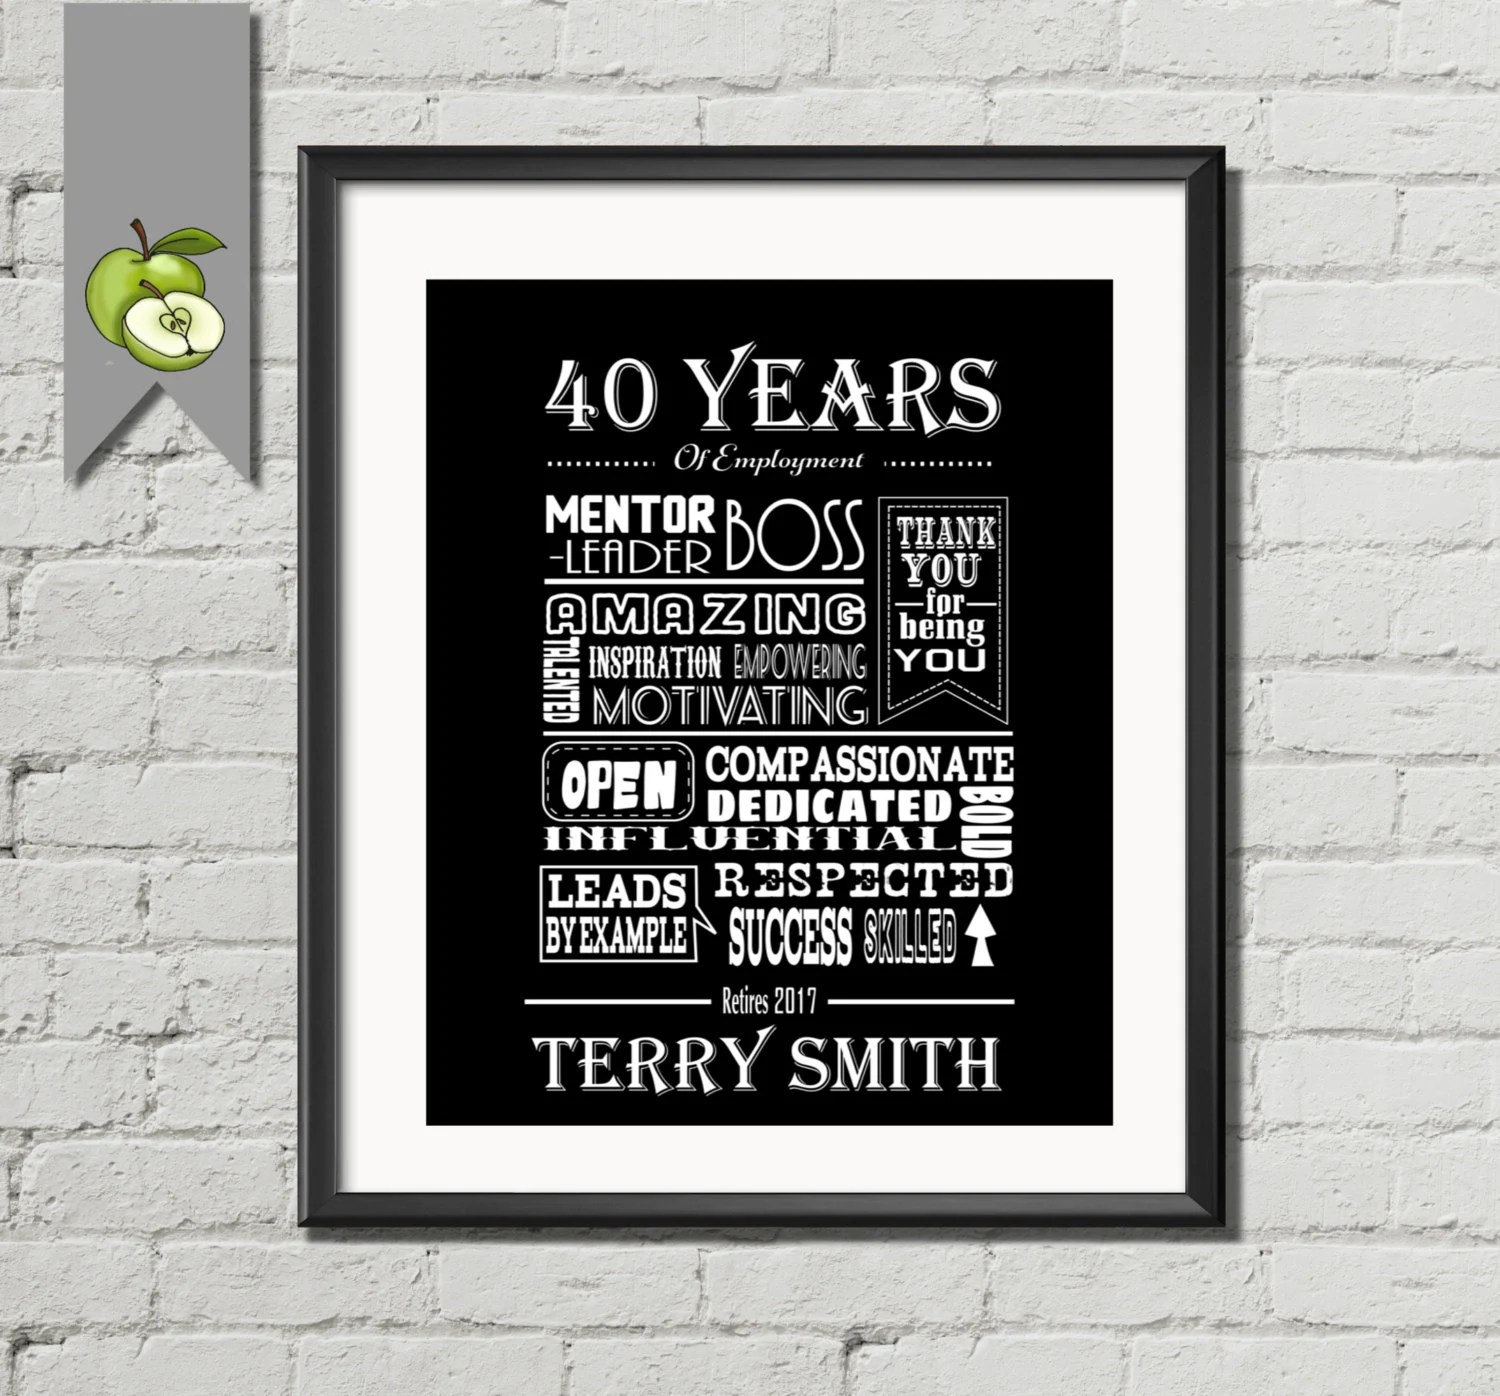 Items Similar To Boss Retirement Gift Retirement Messages